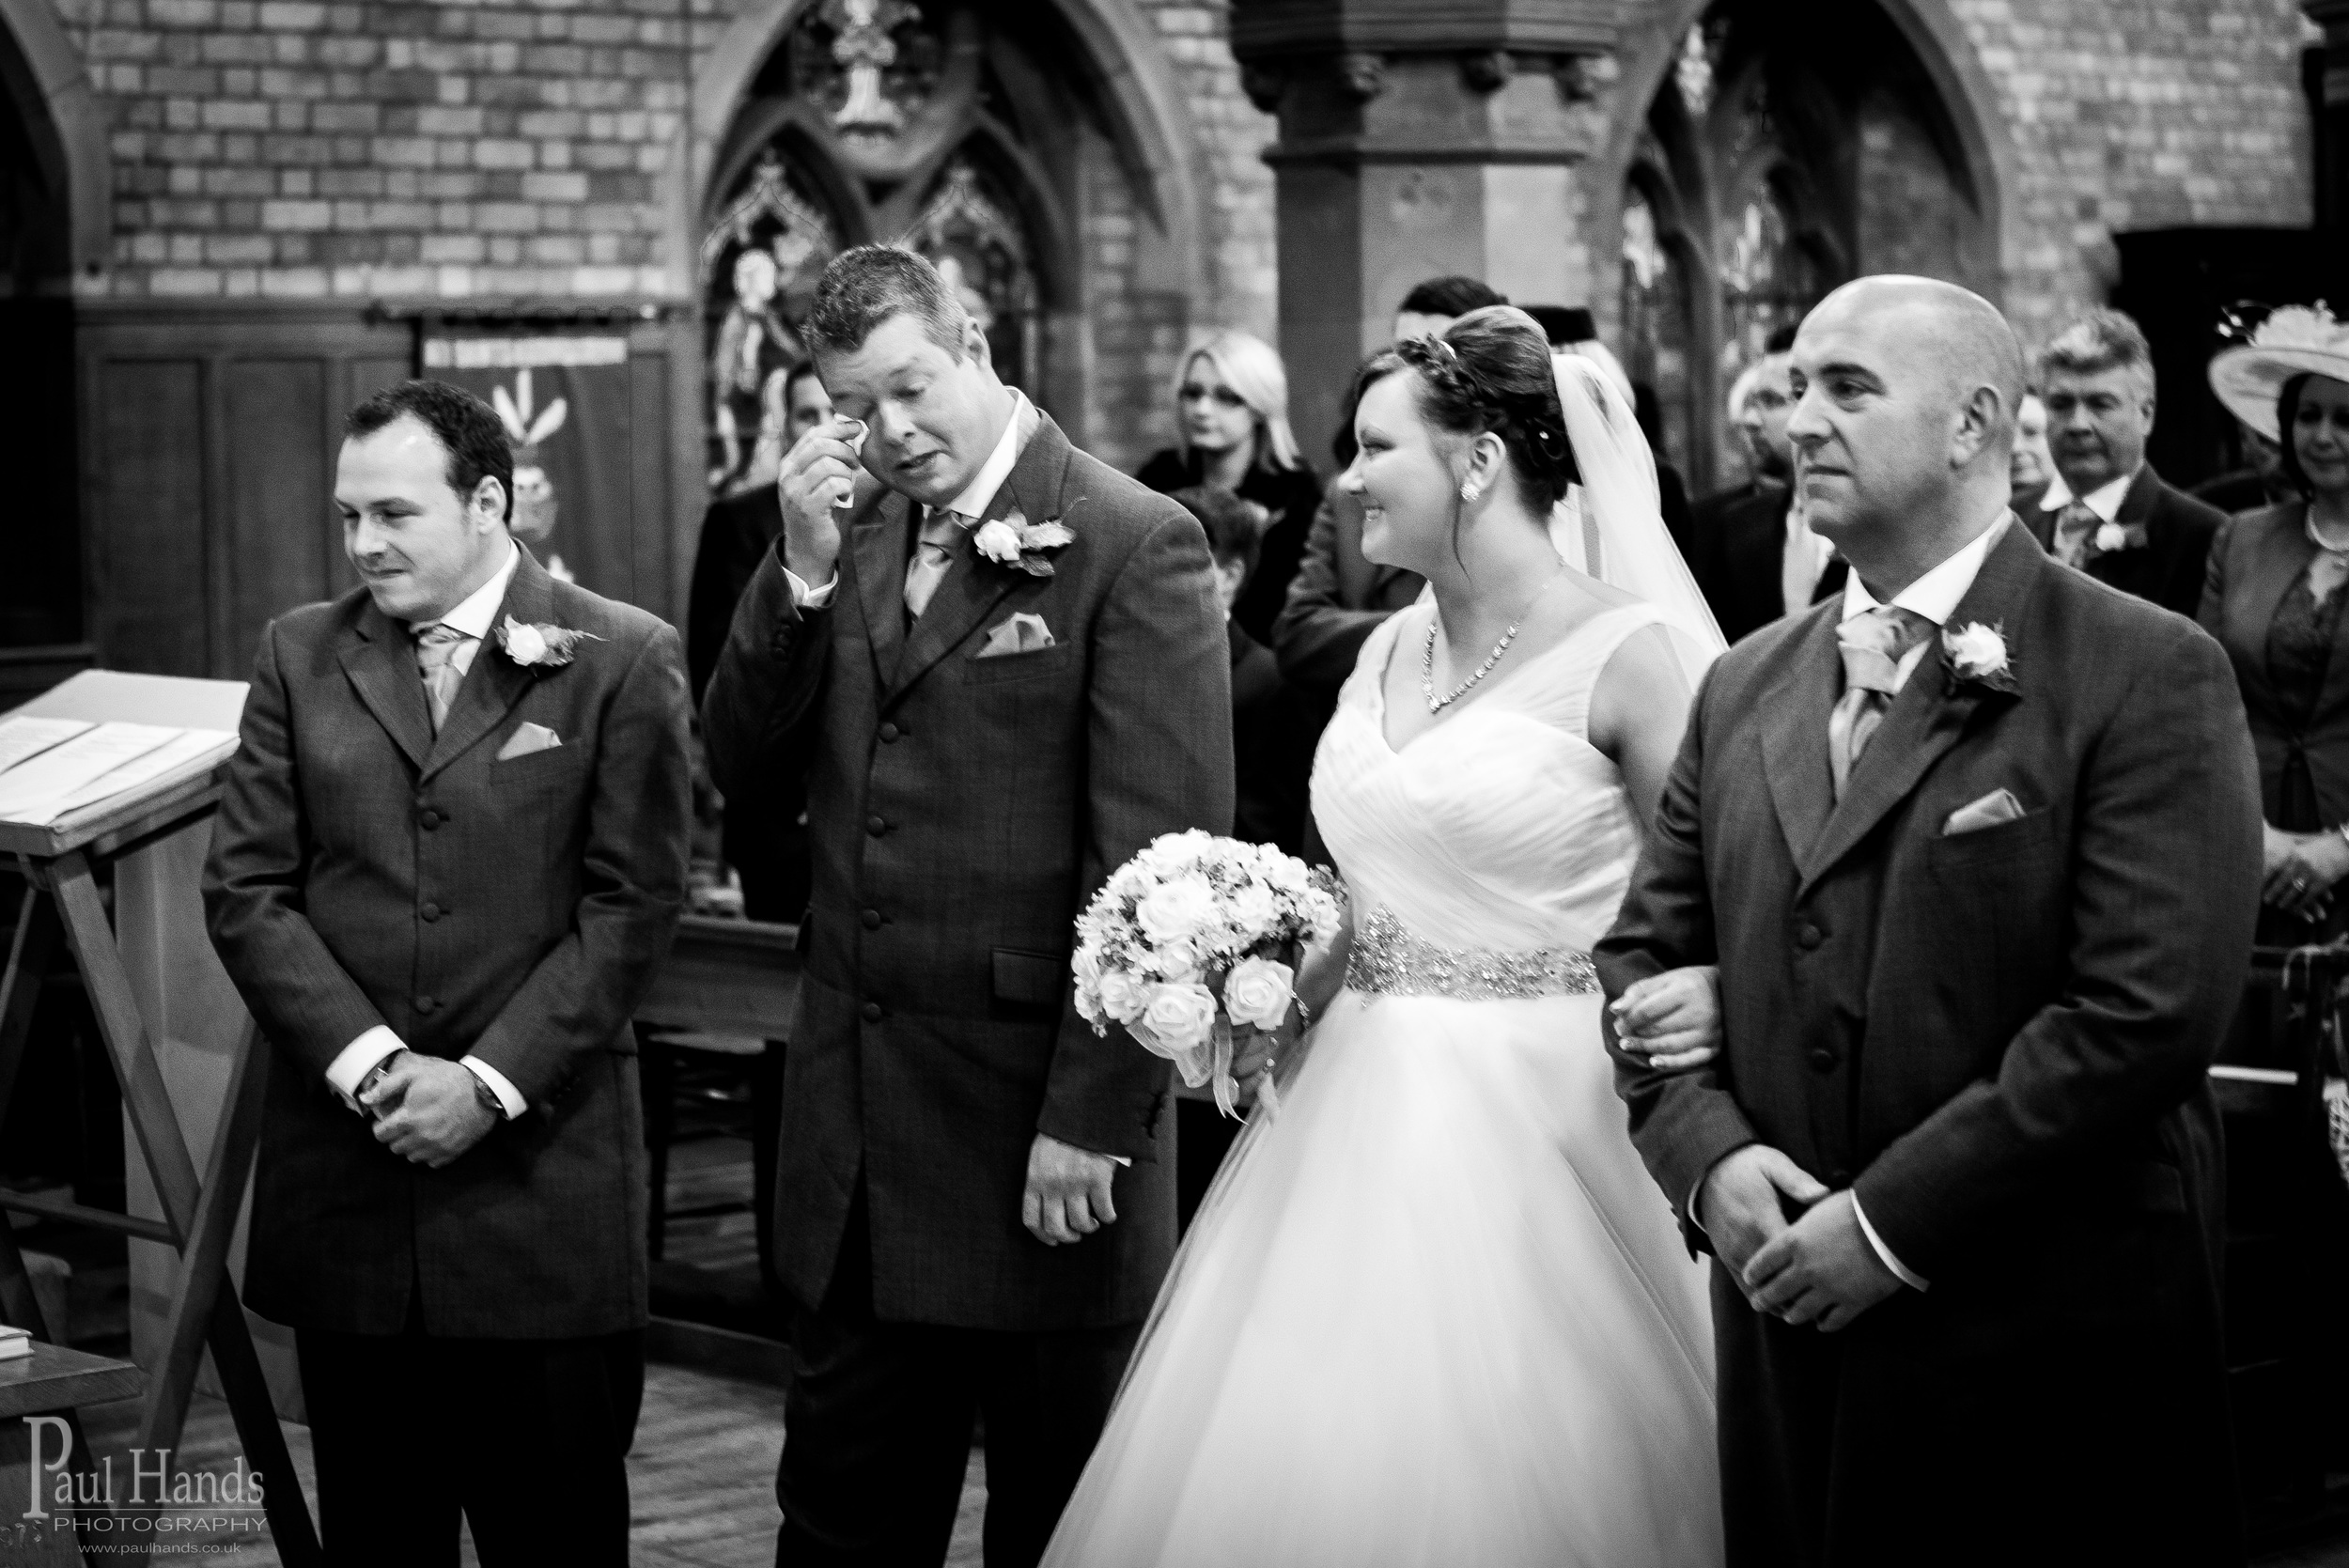 Paul Hands Photography, Hands On Wedding Photography Burbage Hinckley Leicestershire Midlands England United Kingdom